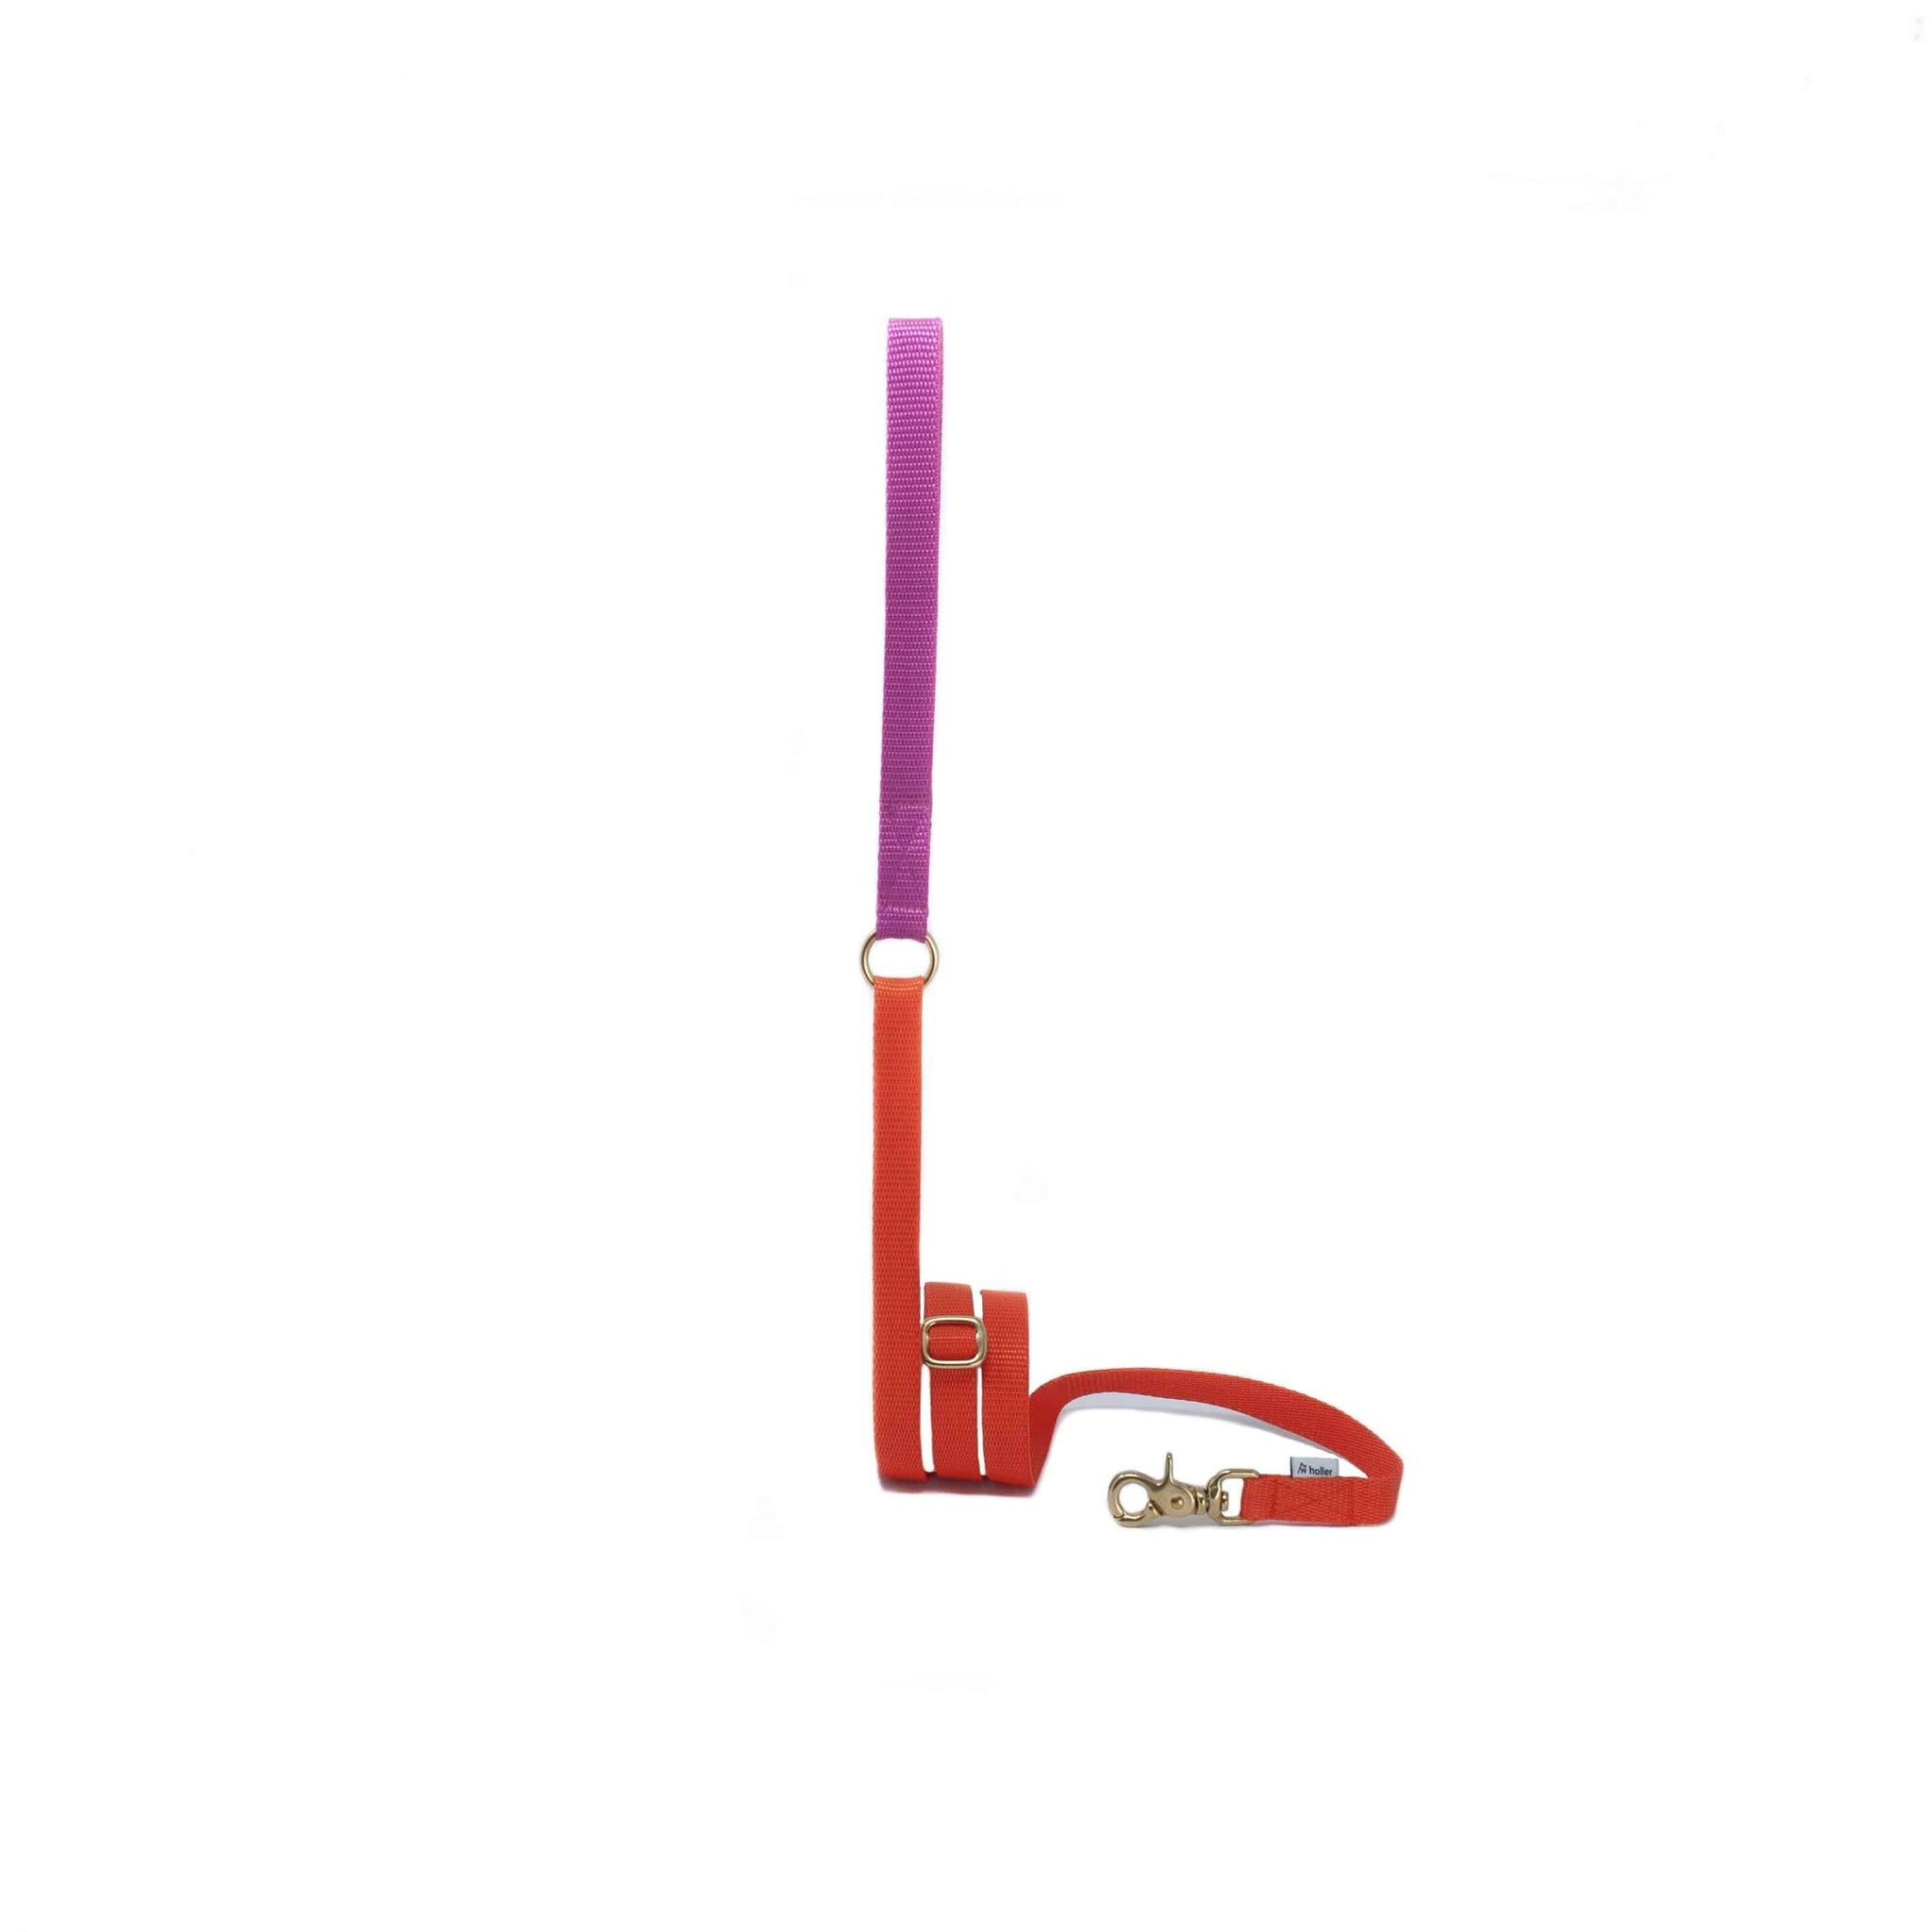 Extendable Holler Lead - Orange & Pink Fleece Lined Handle - Holler Brighton